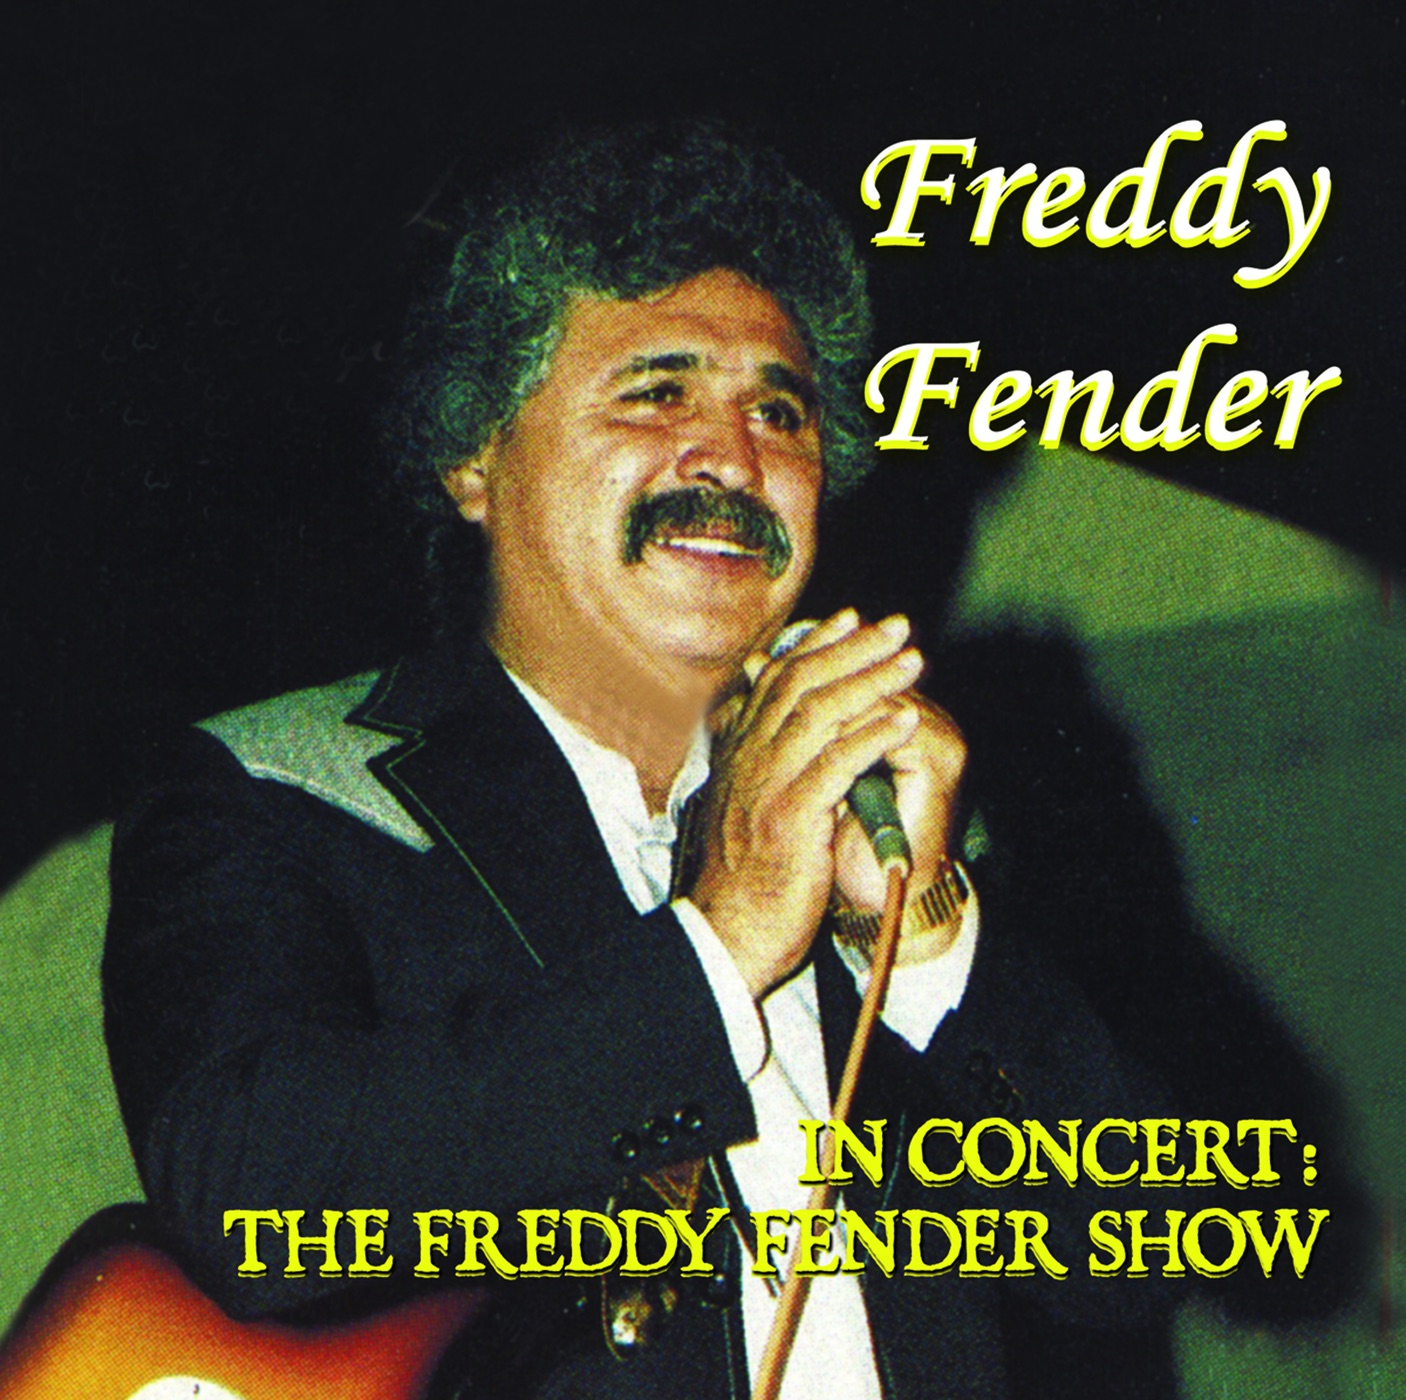 In Concert-The Freddy Fender Show